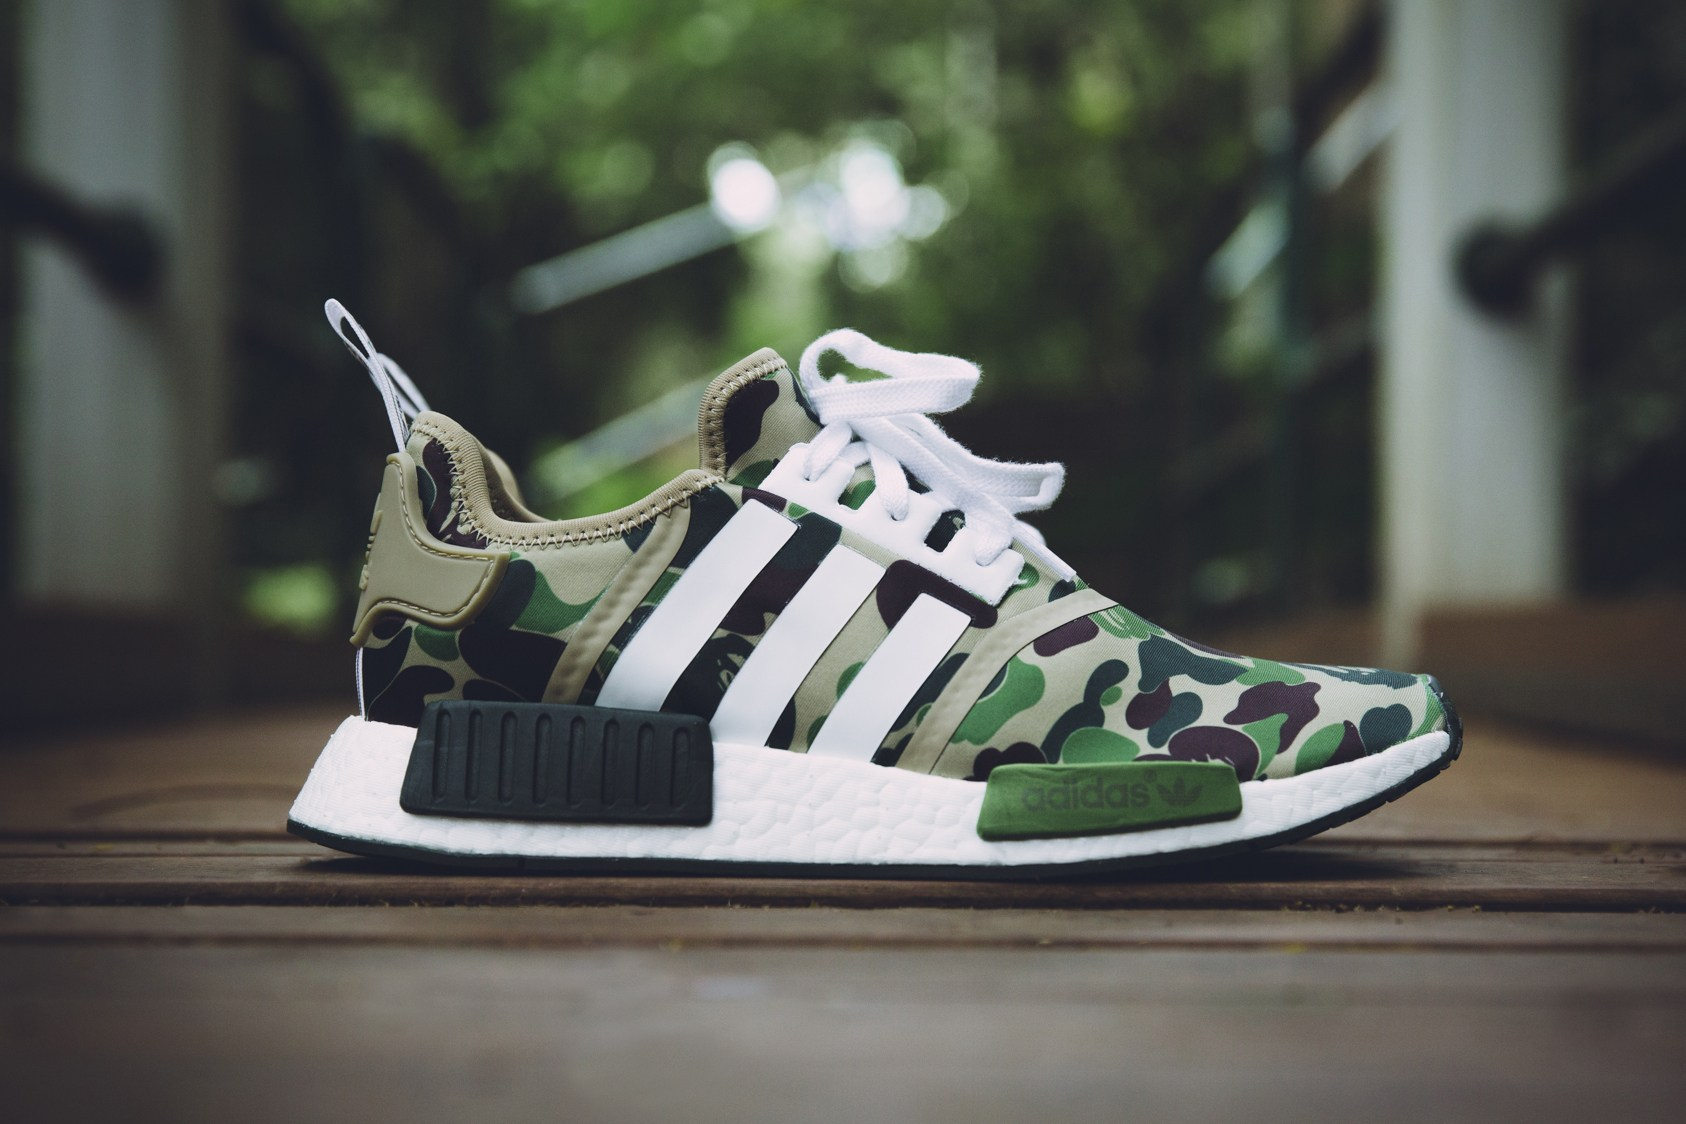 Official Store Links for the BAPE x adidas Originals NMD Re-Release Western Europe A Bathing Ape Three Stripes Germany - 1844242